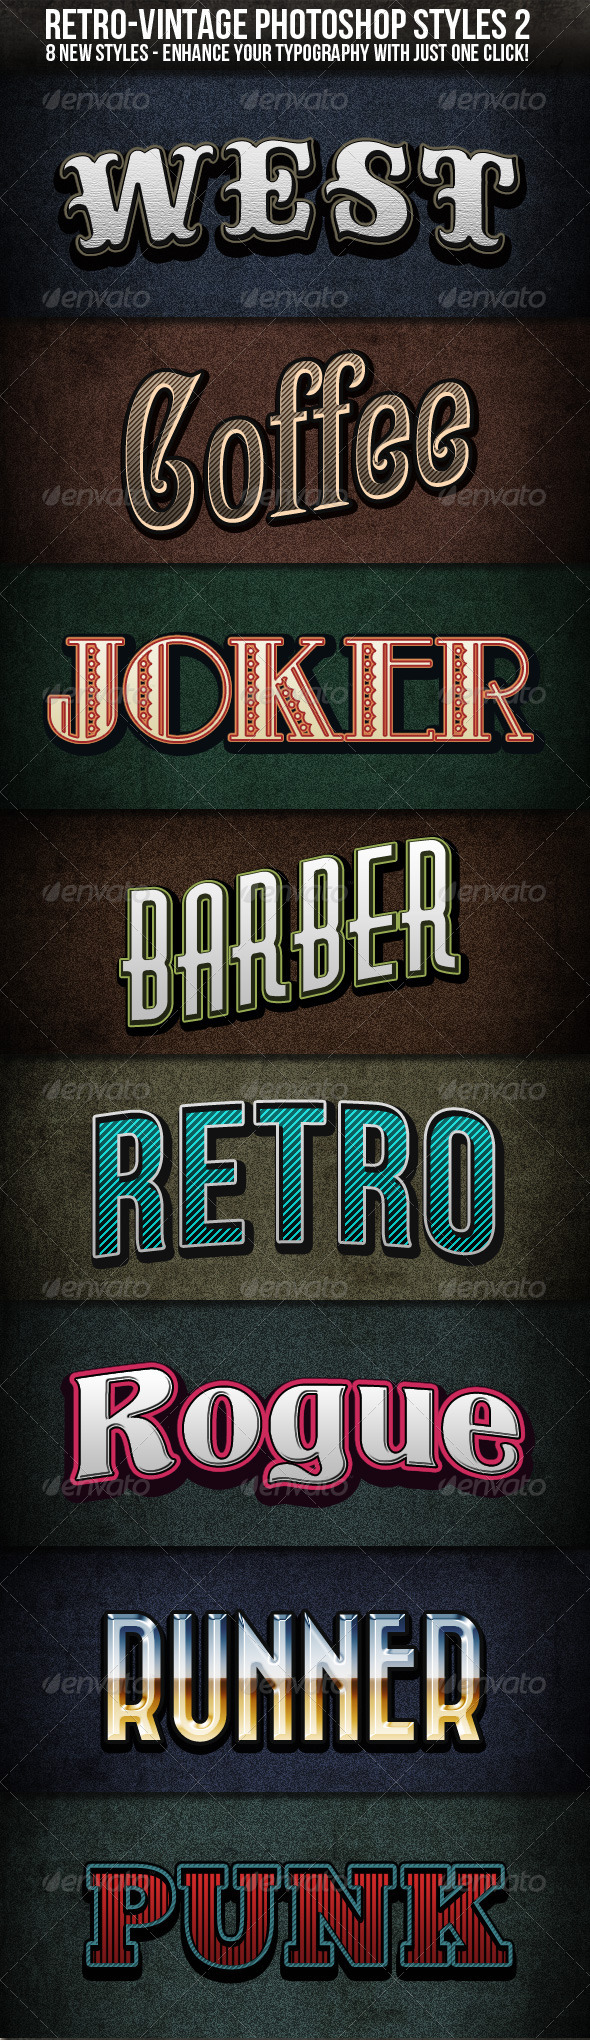 Graphic River Retro-Vintage Styles 2 Add-ons -  Photoshop 541891